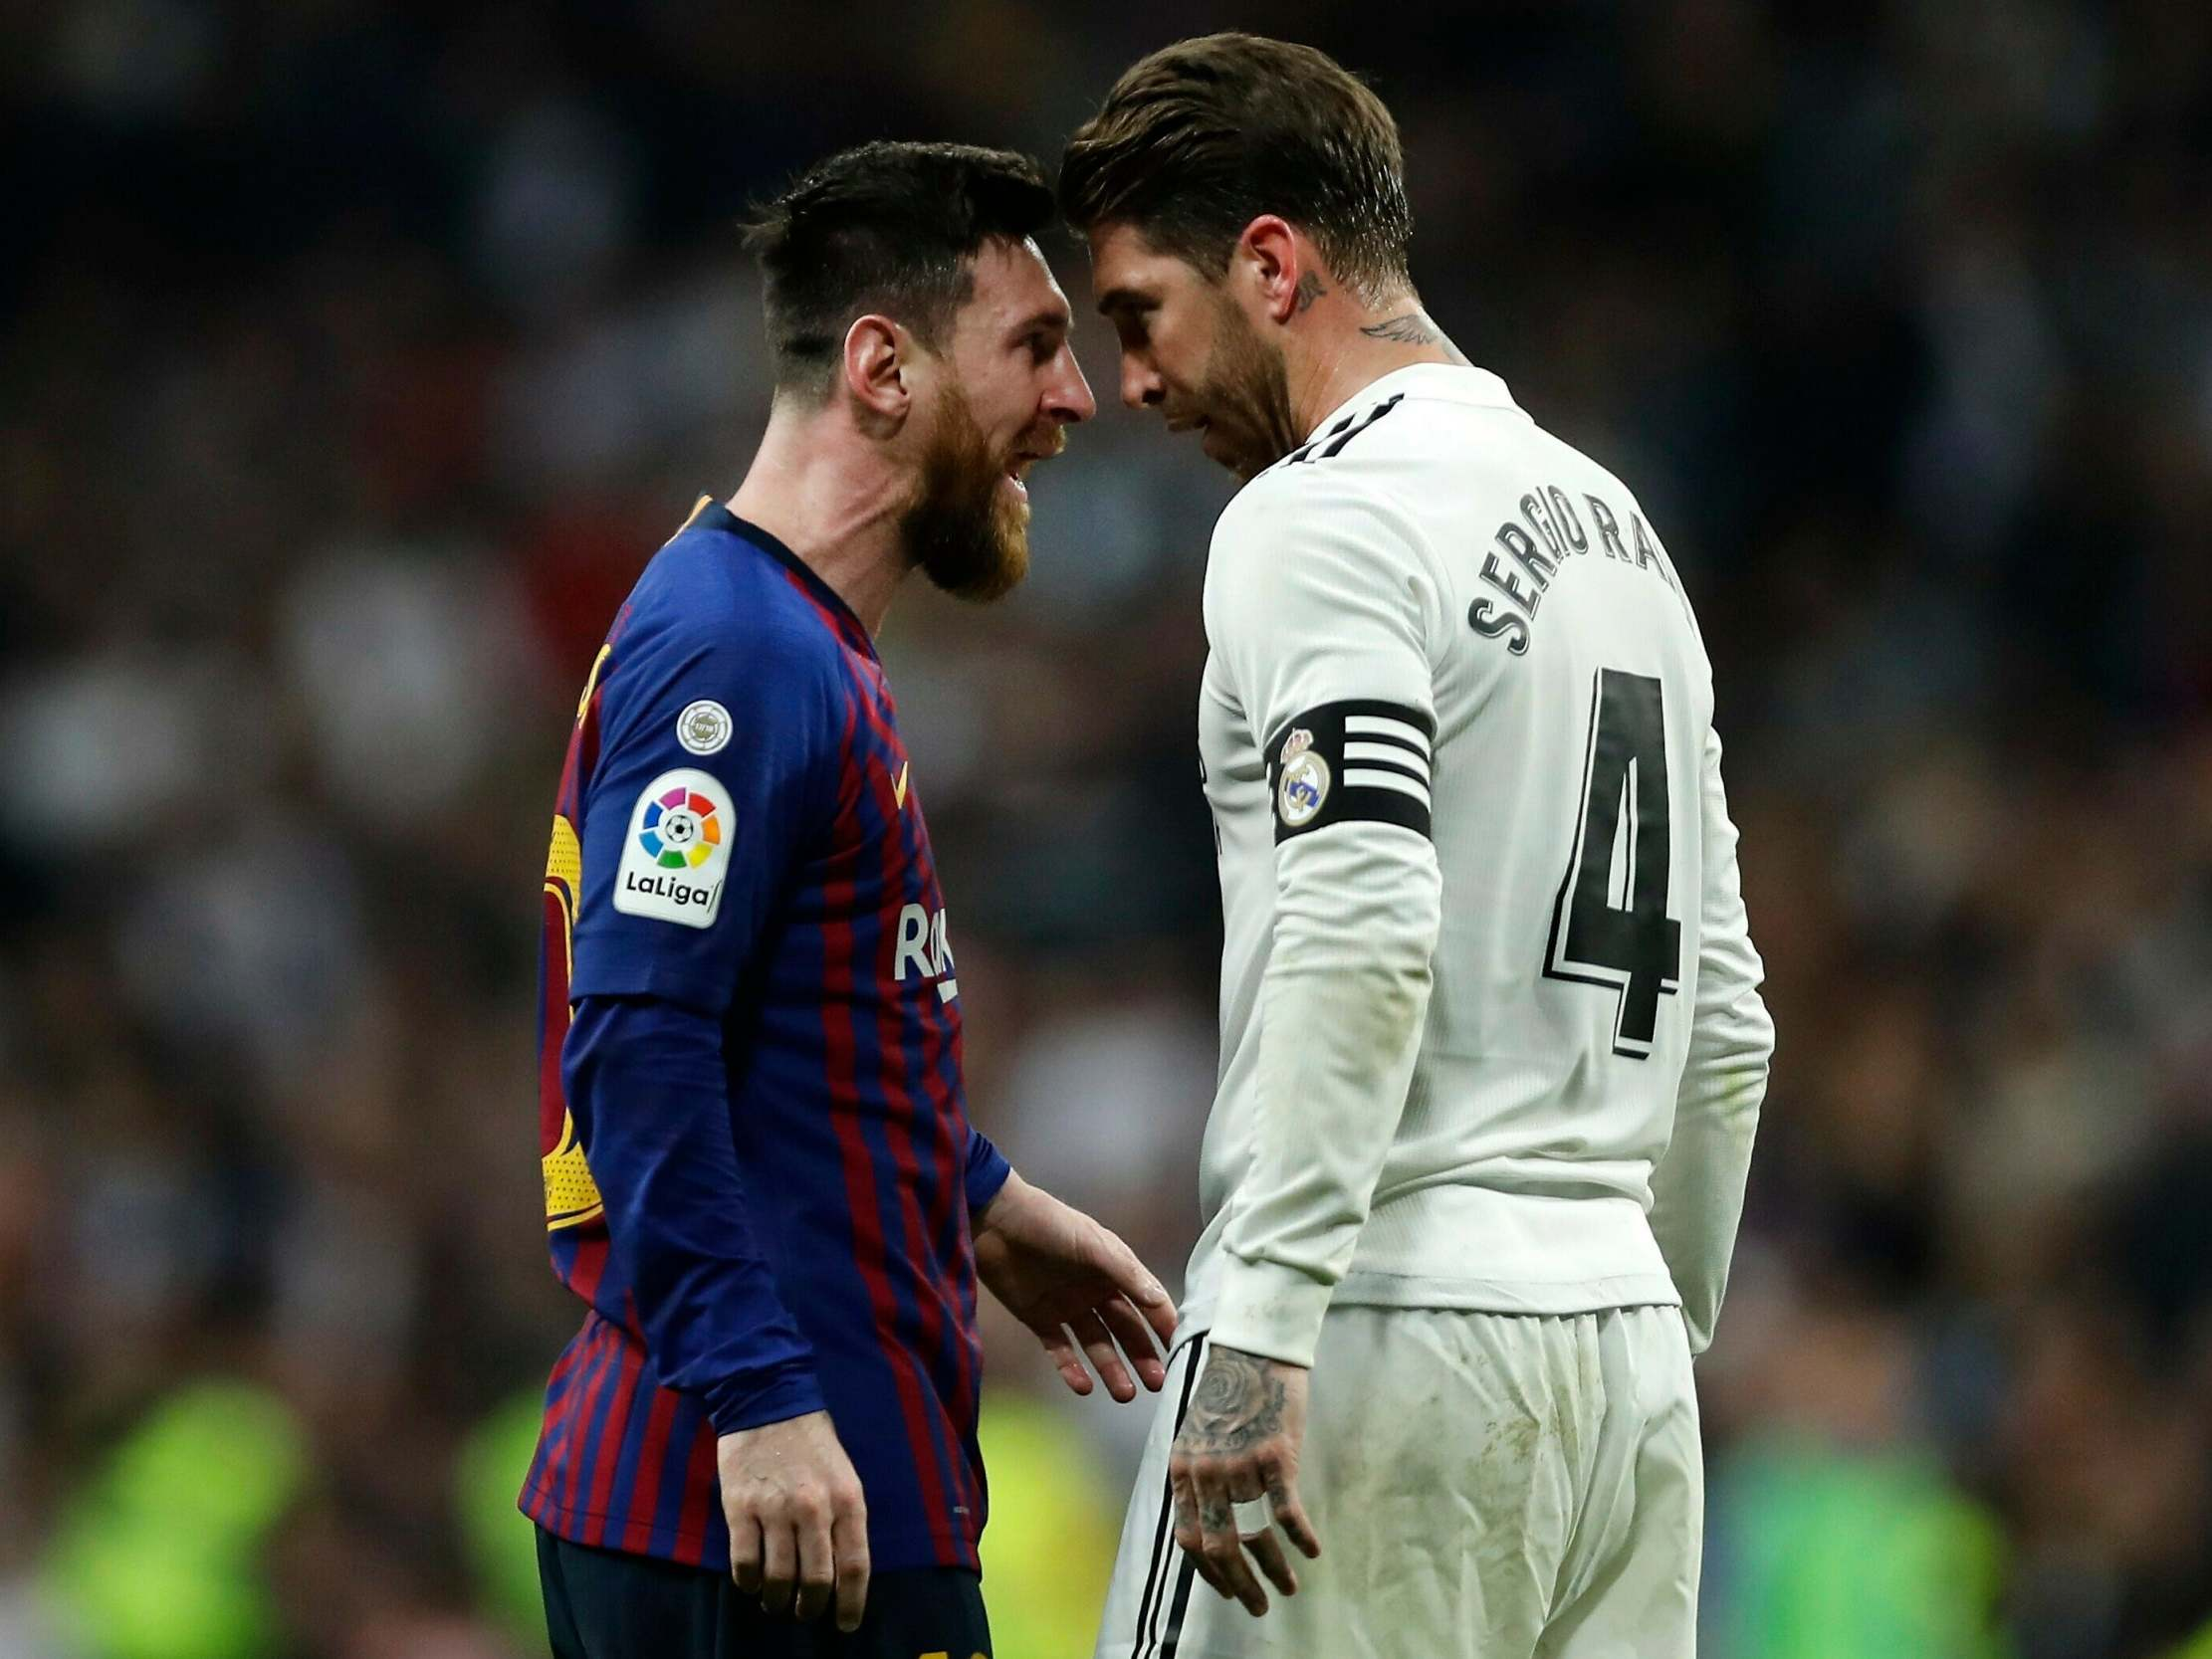 Barcelona vs Real Madrid: La Liga asks for Clasico to be moved due to Catalan protests